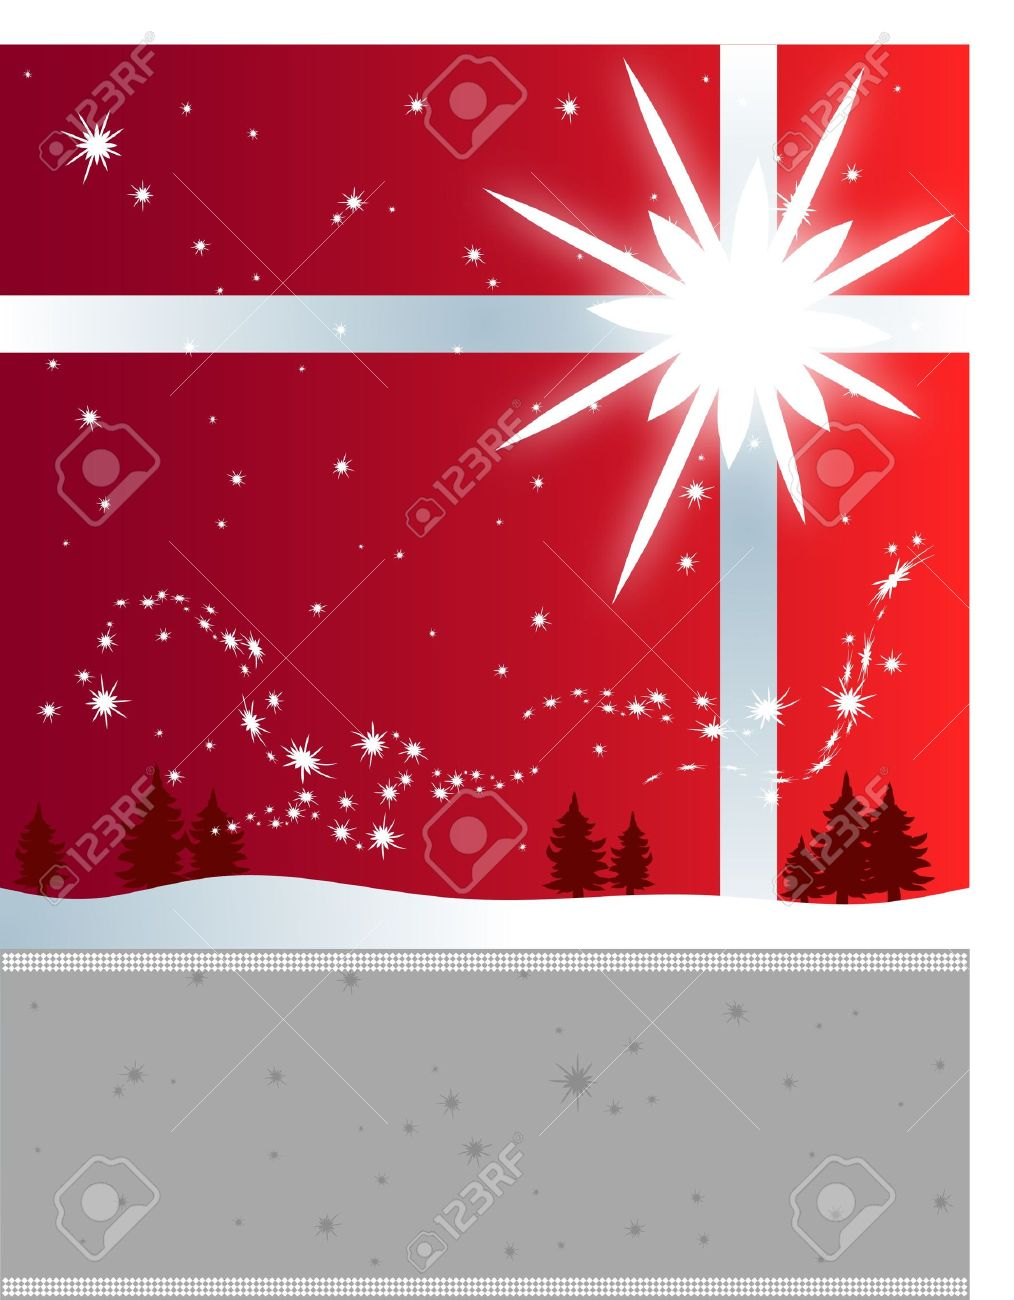 winter holiday flyer background with a bright star and snowflakes